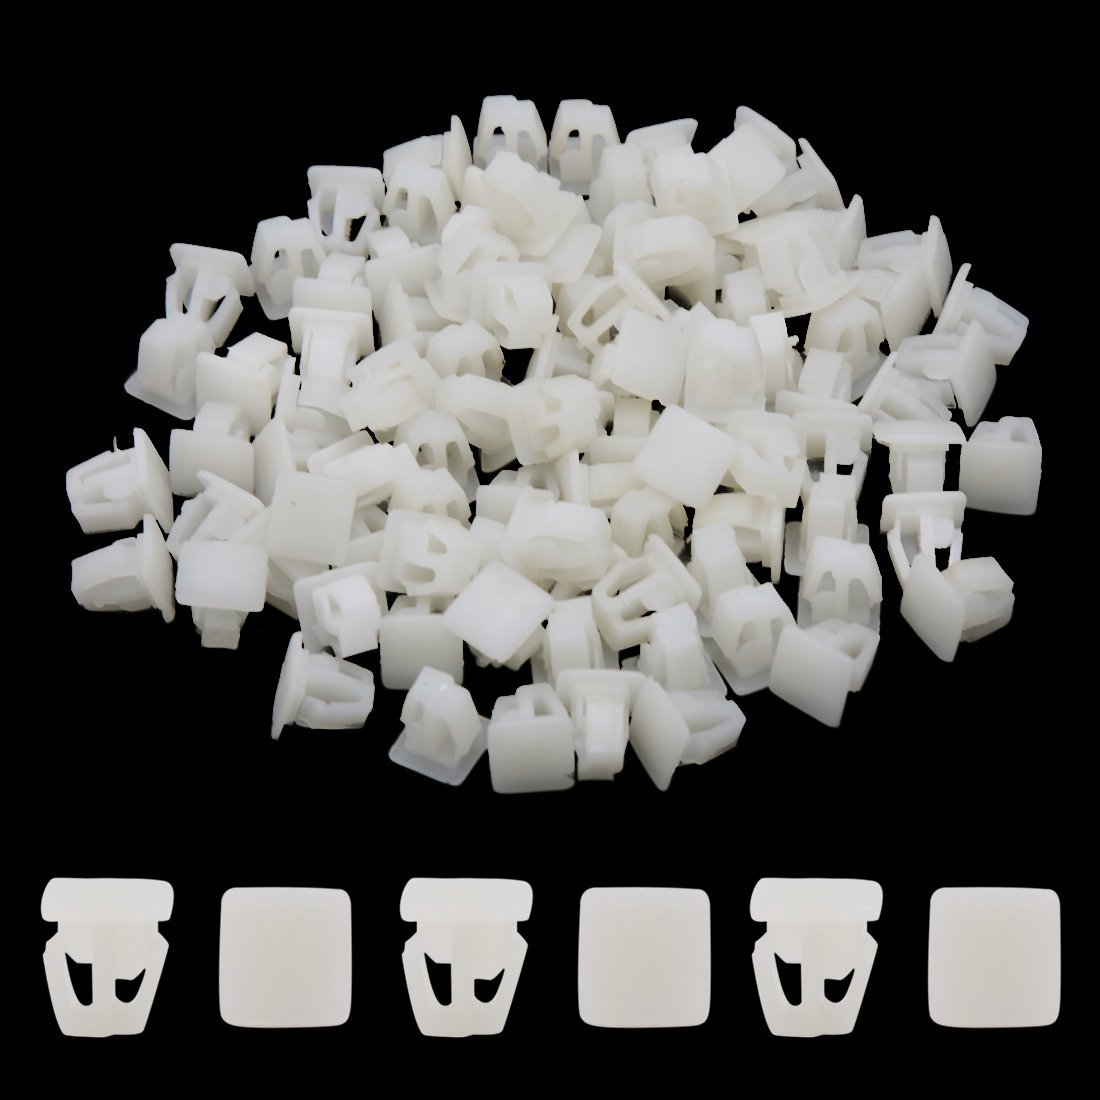 Amazon.com: eDealMax 100 piezas de plástico Blanco de remache Sujetador Mud Flaps parachoques Fender Clips 12mm: Automotive